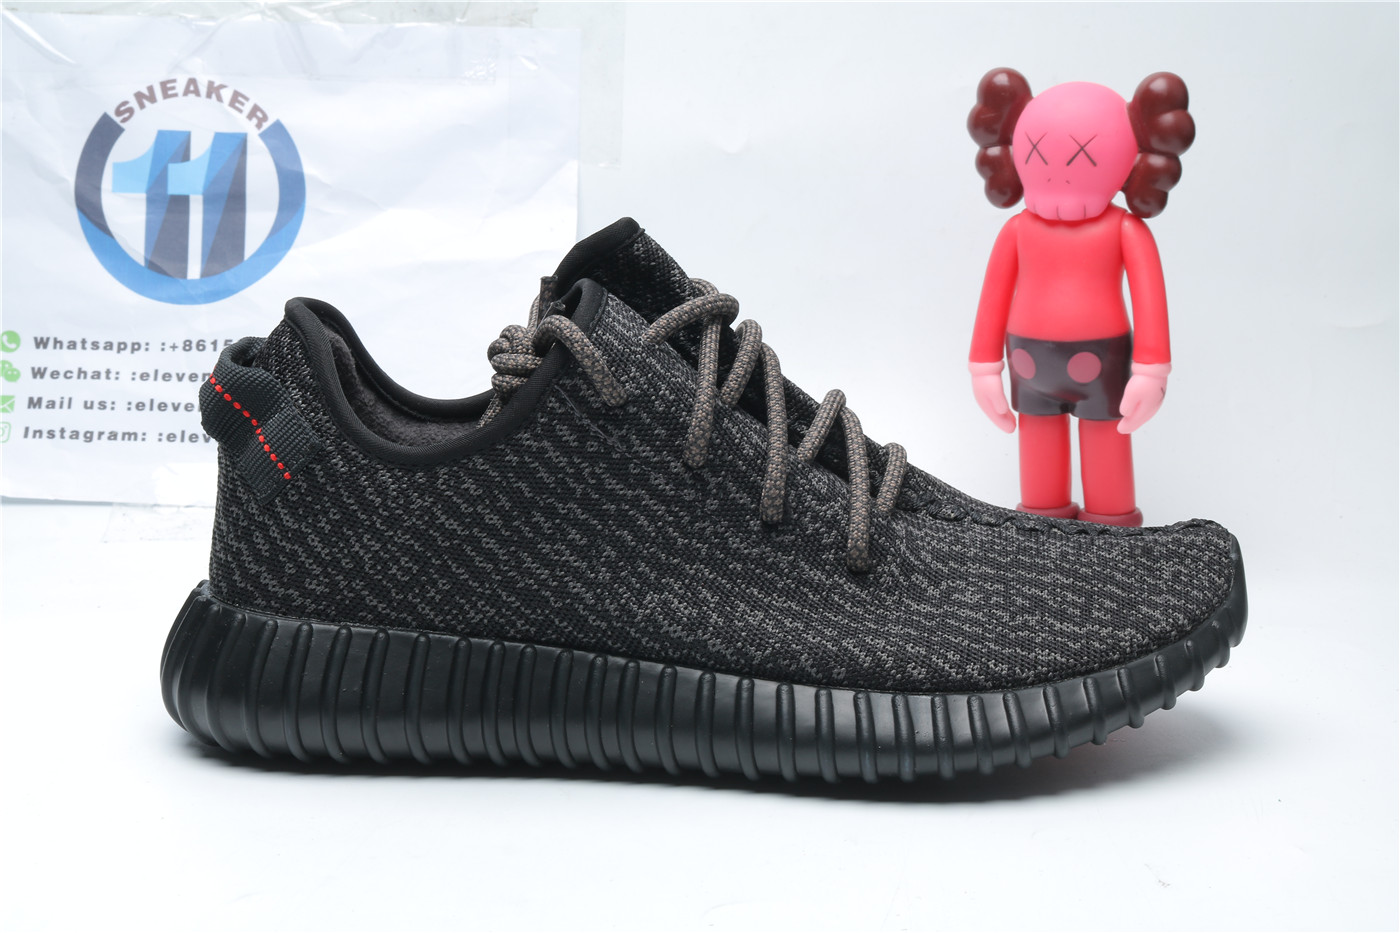 Adidas Yeezy 350 Boost Black 5350